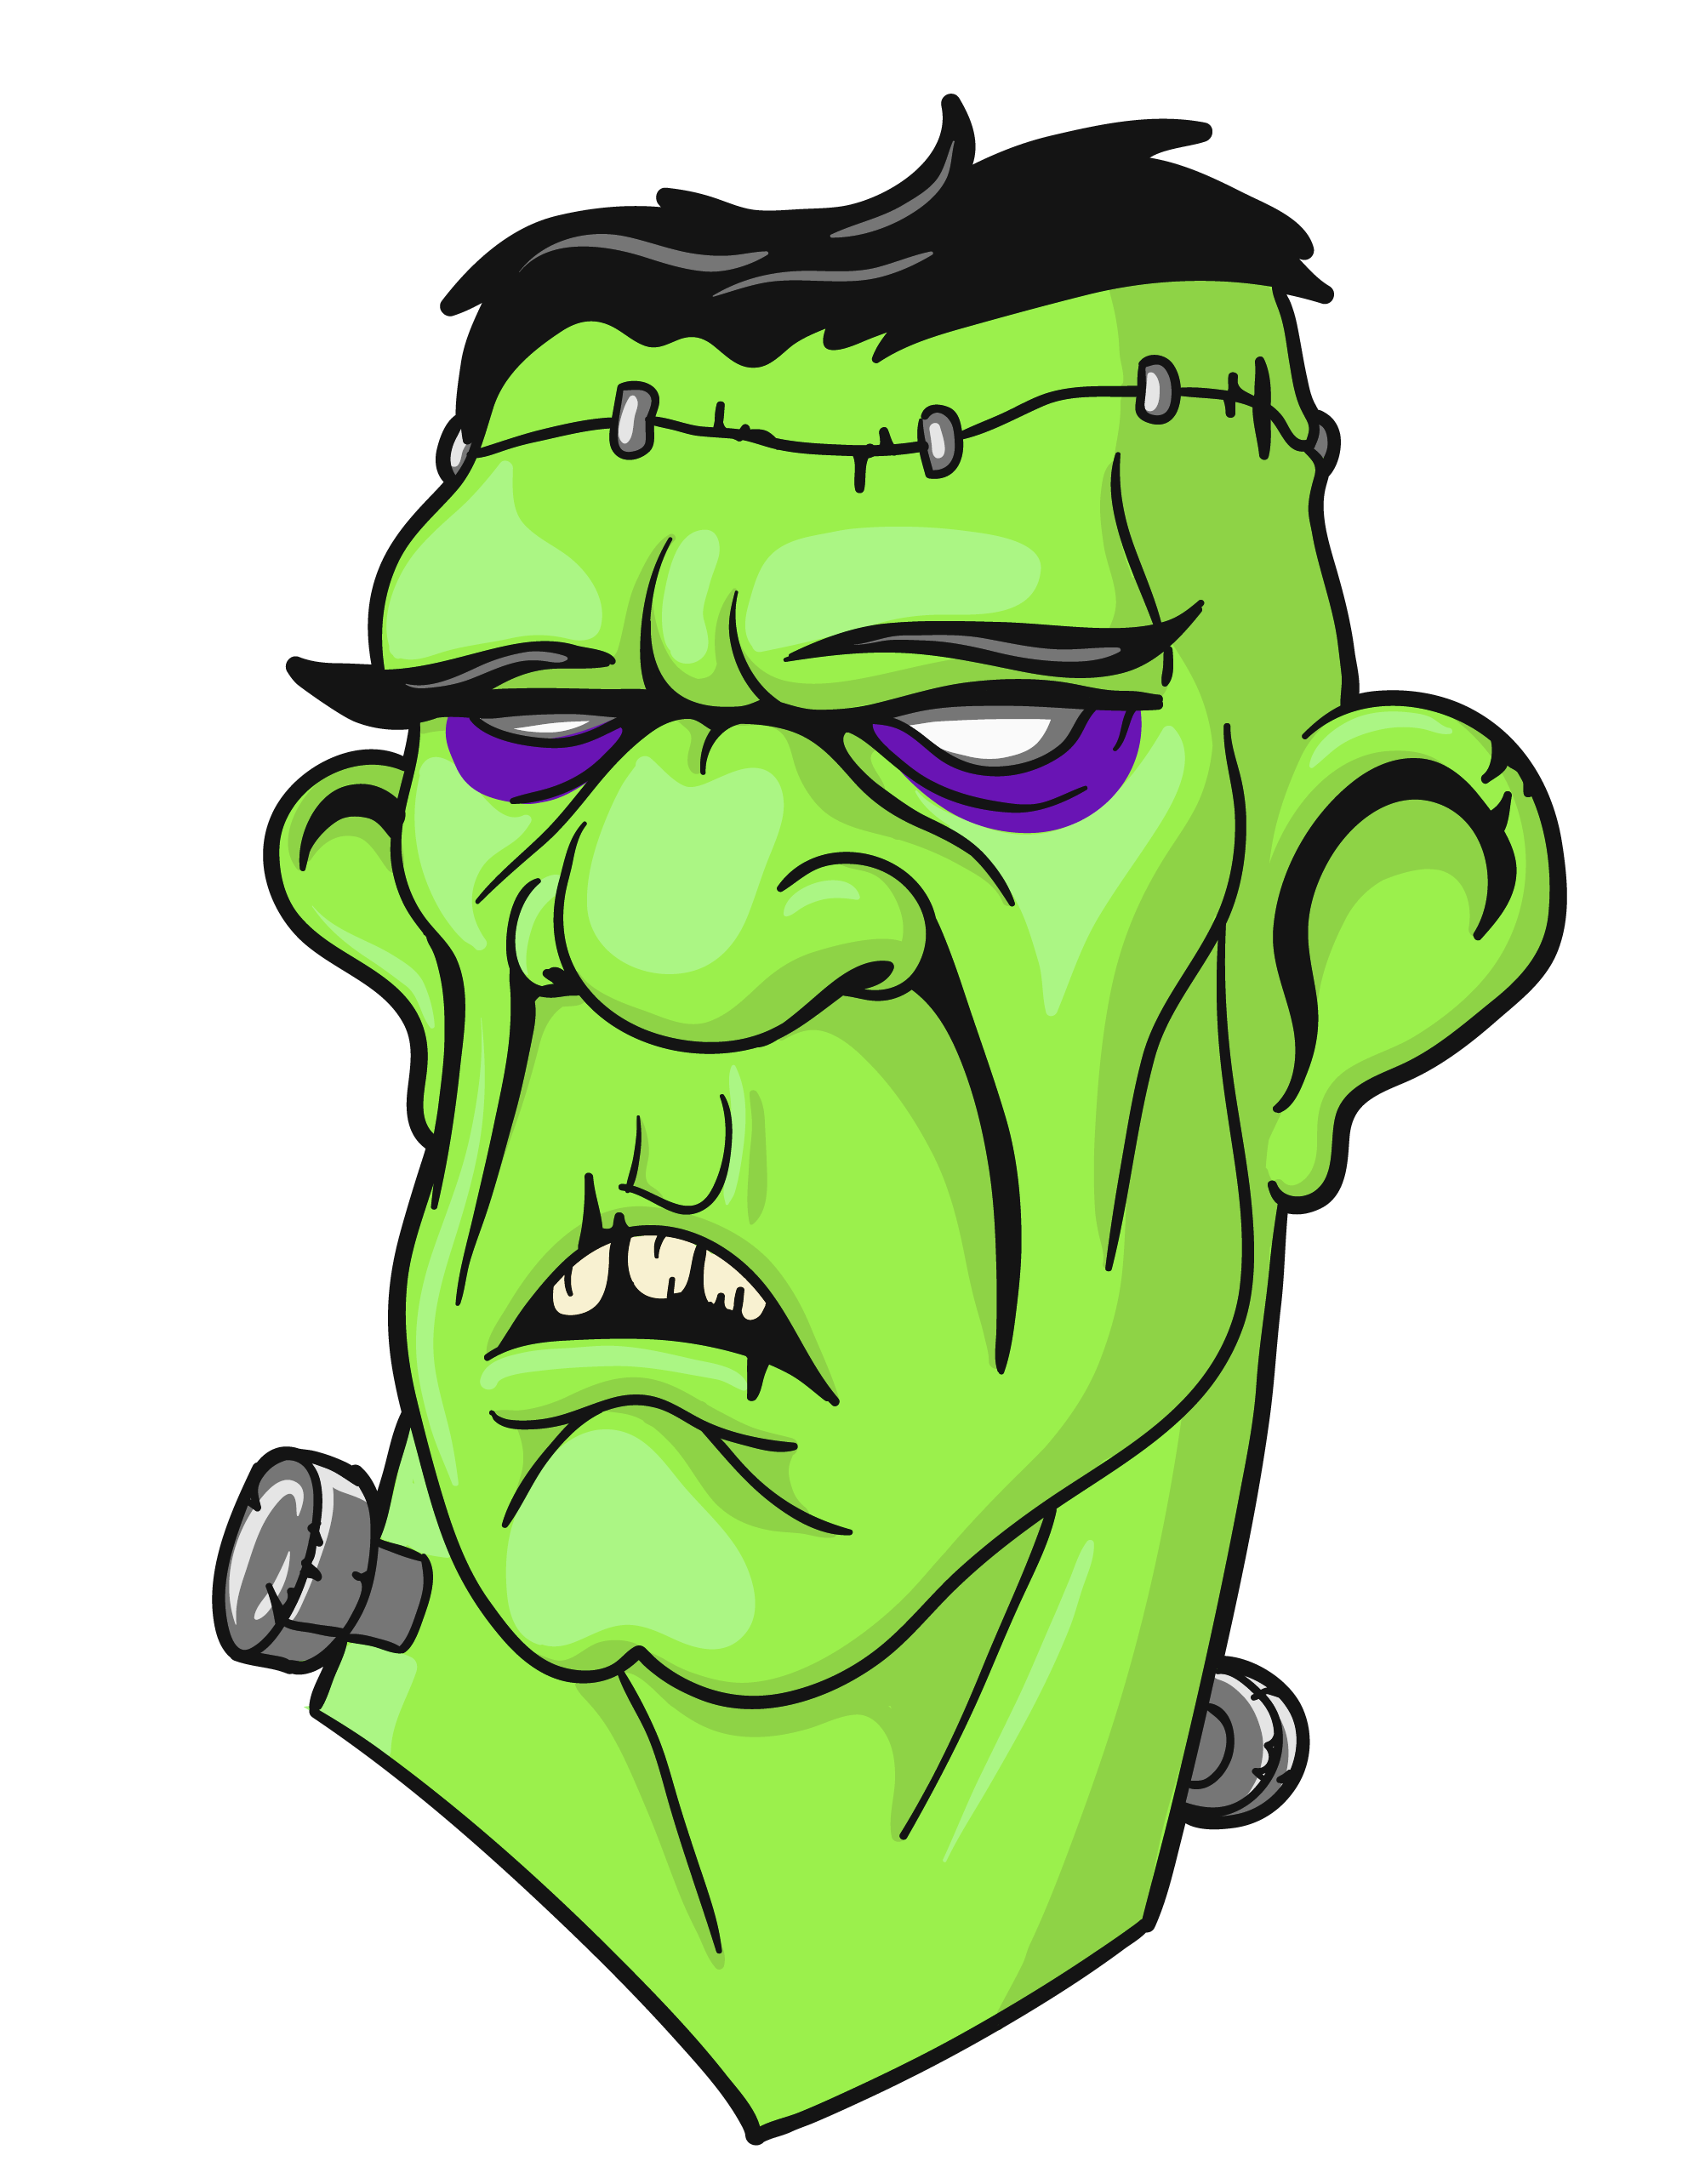 Head png gallery yopriceville. Stitch clipart frankenstein